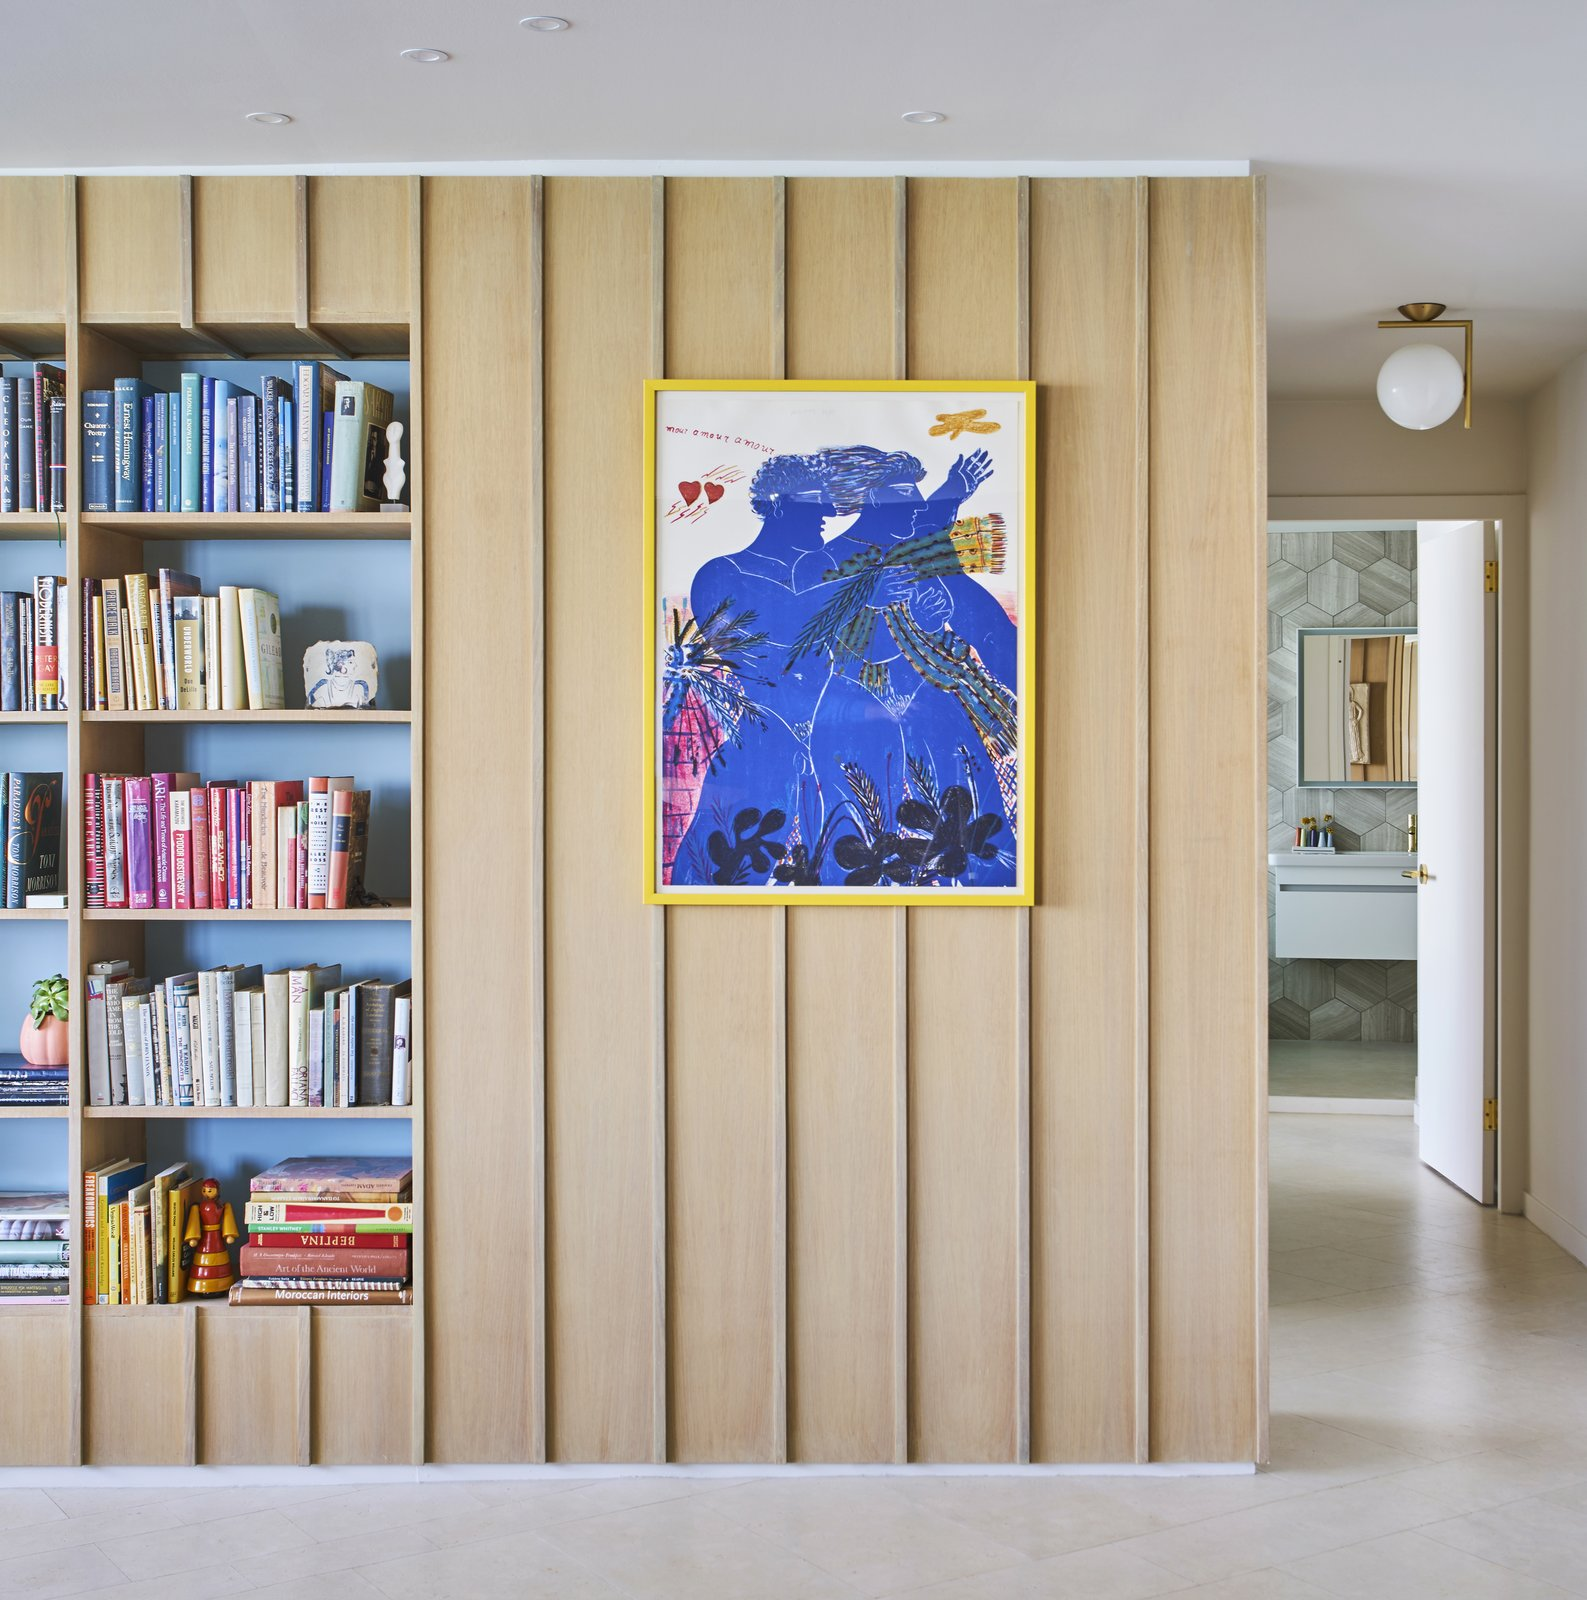 Cork Floor, Storage Room, and Shelves Storage Type An Alekos Fassianos lithograph and soft blue niches offset the wood paneling. An IC lamp by Michael Anastassiades hangs in the hallway. - Chicago, Illinois Dwell Magazine : September / October 2017  Photo 6 of 9 in An Interior Designer Helps His Mother Turn Her 1960s Chicago Apartment Into a Colorful Haven